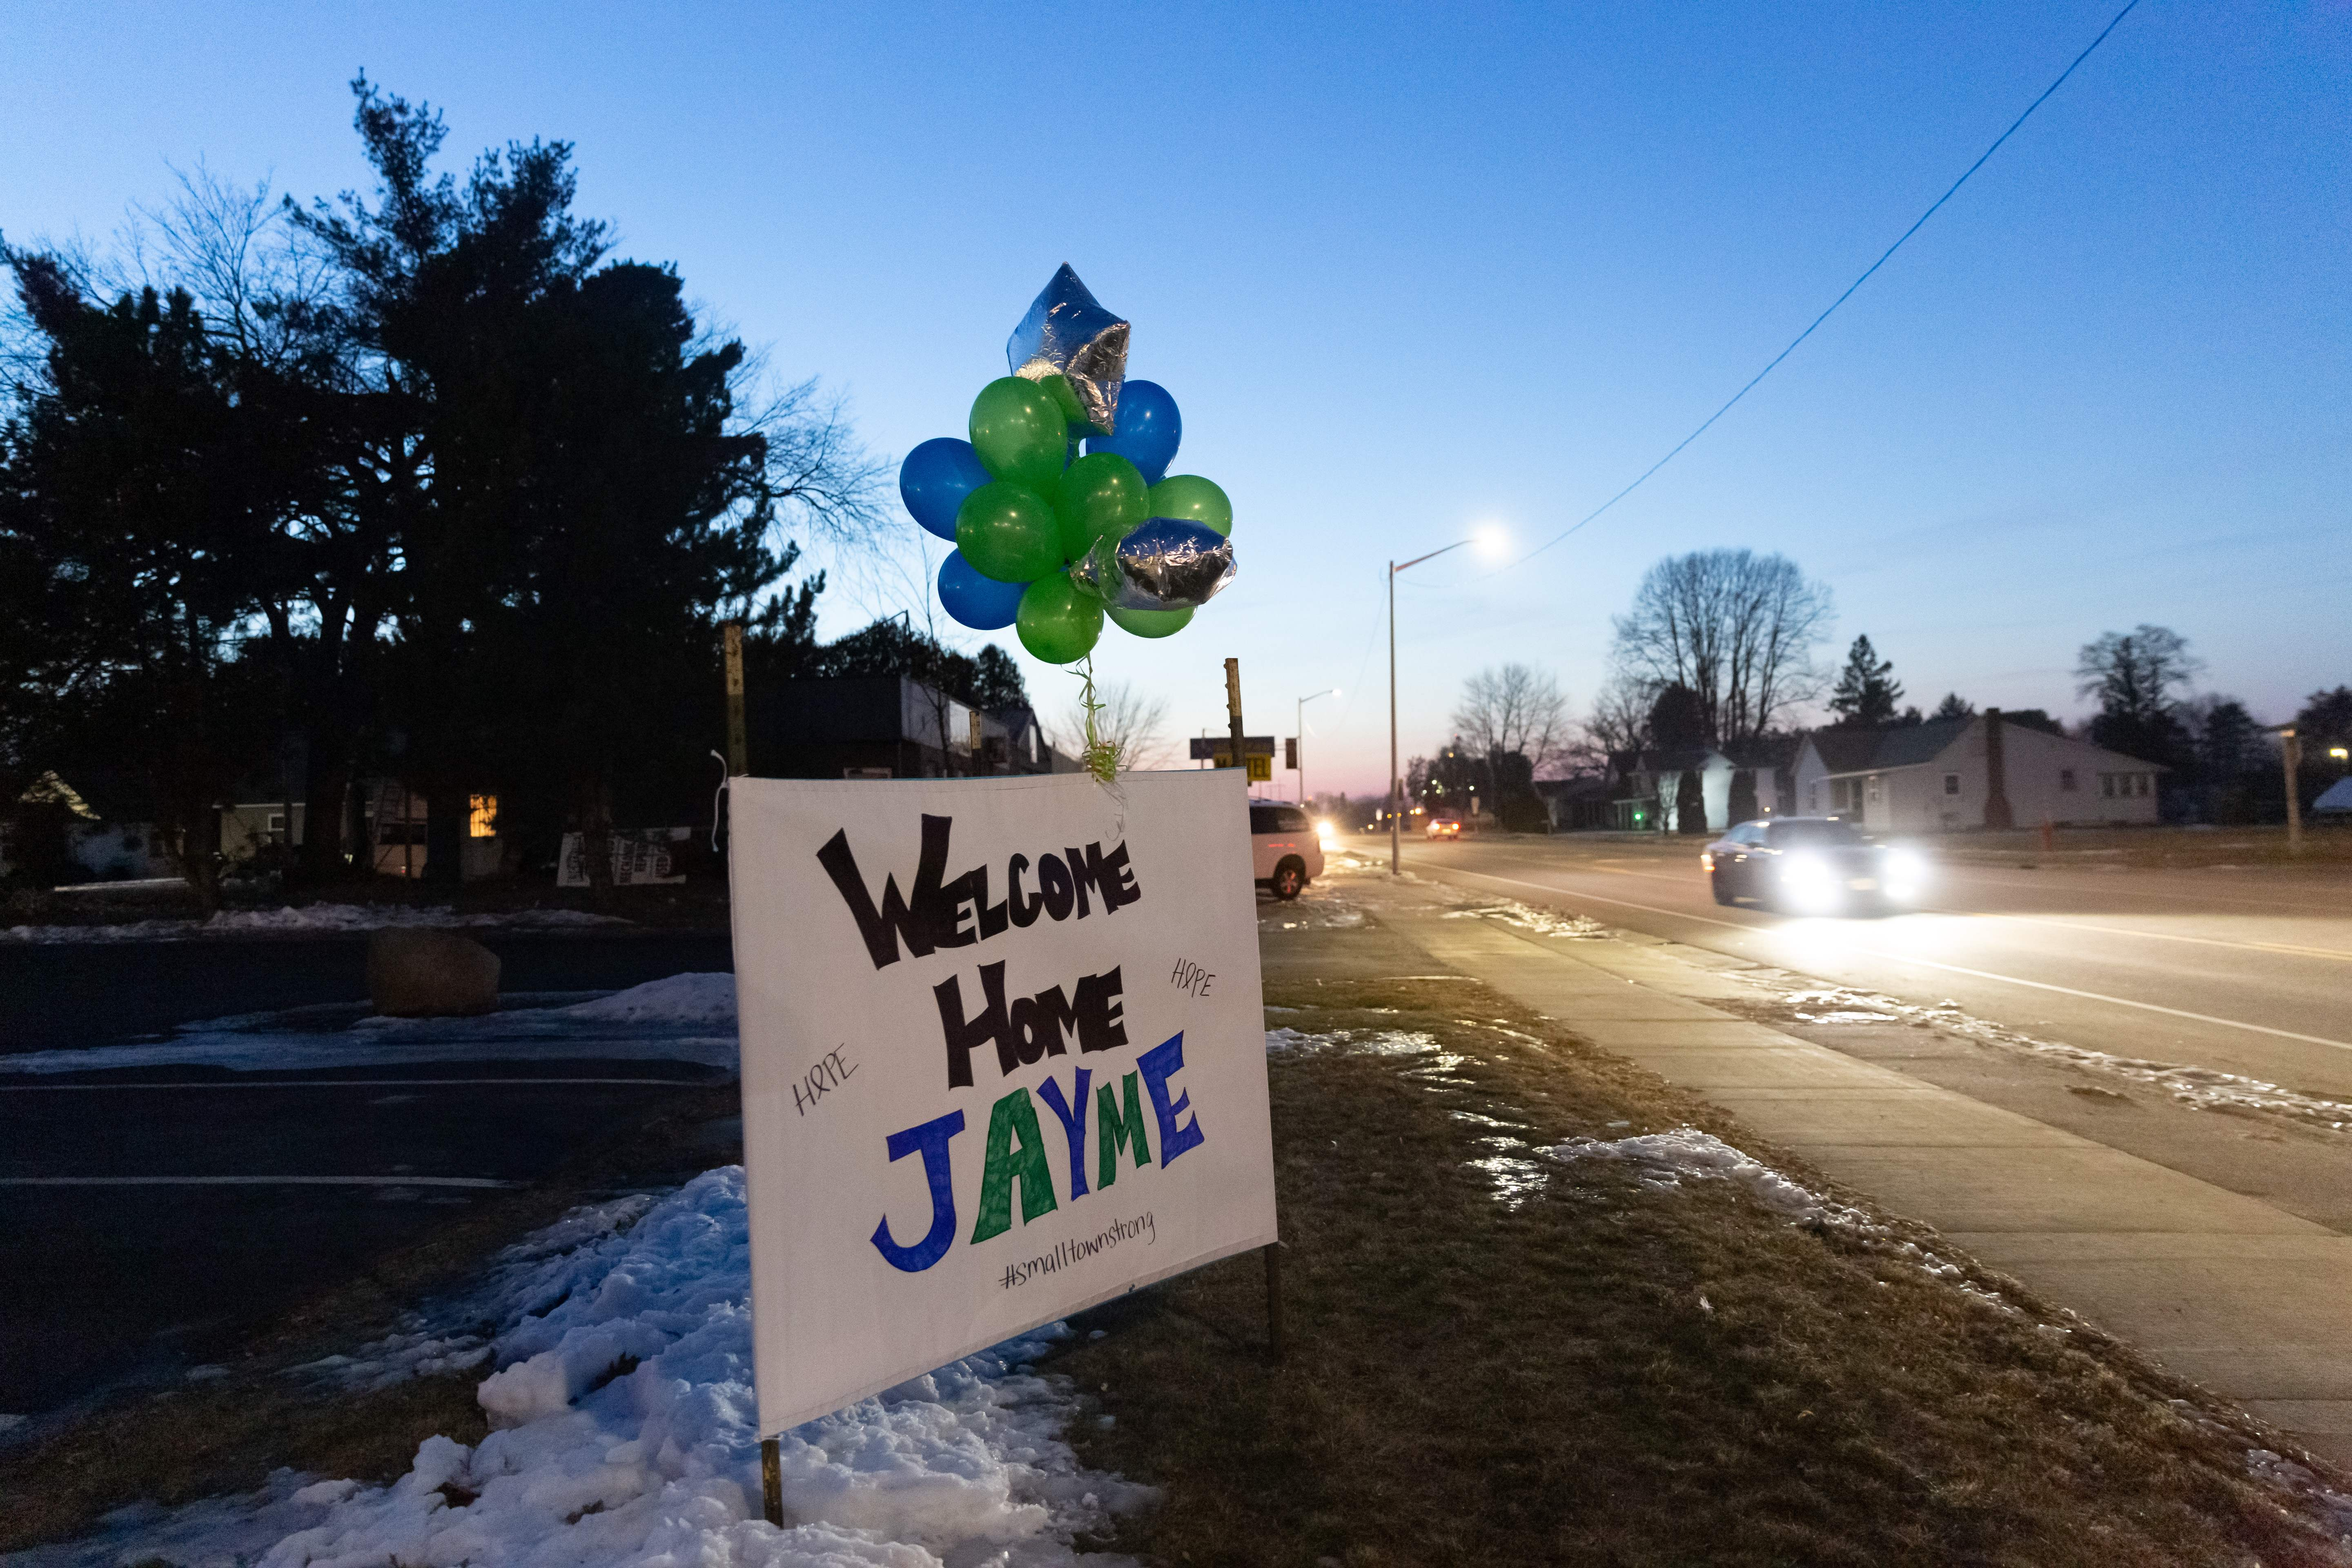 """A """"Welcome Home Jayme"""" sign displayed for Jayme Closs on January 11, 2019 in Barron, Wisconsin, one day after the missing teenager was found coming out of nearby woods. (KEREM YUCEL/AFP/Getty Images)"""